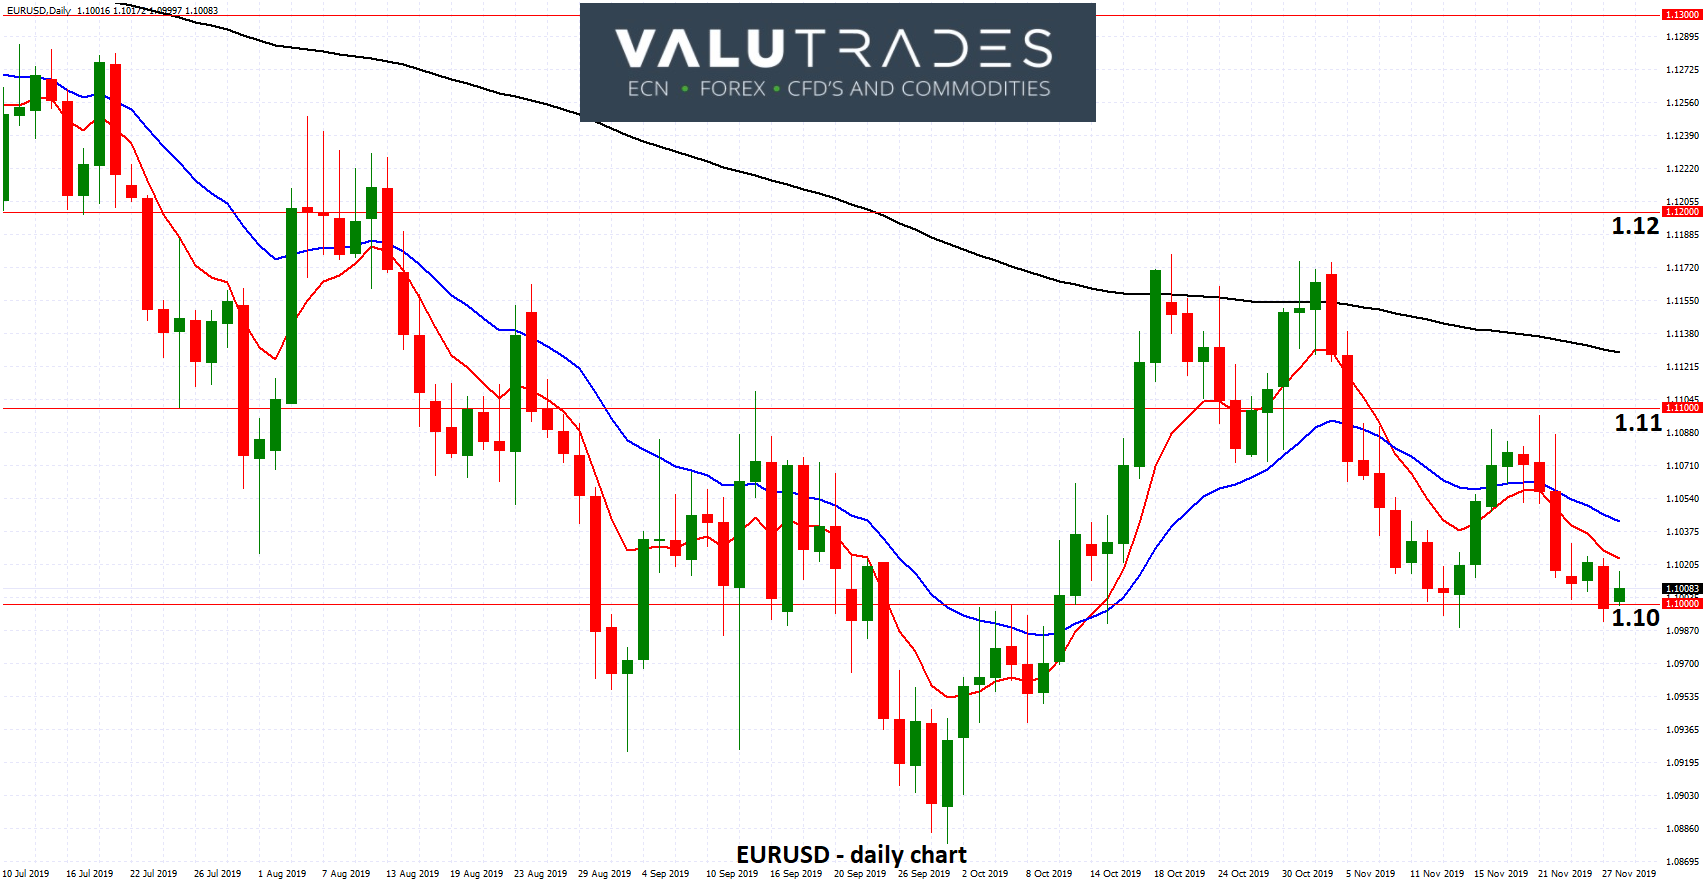 EURUSD - Rests on Support at 1.10 as President Lagarde Calls for New Policy